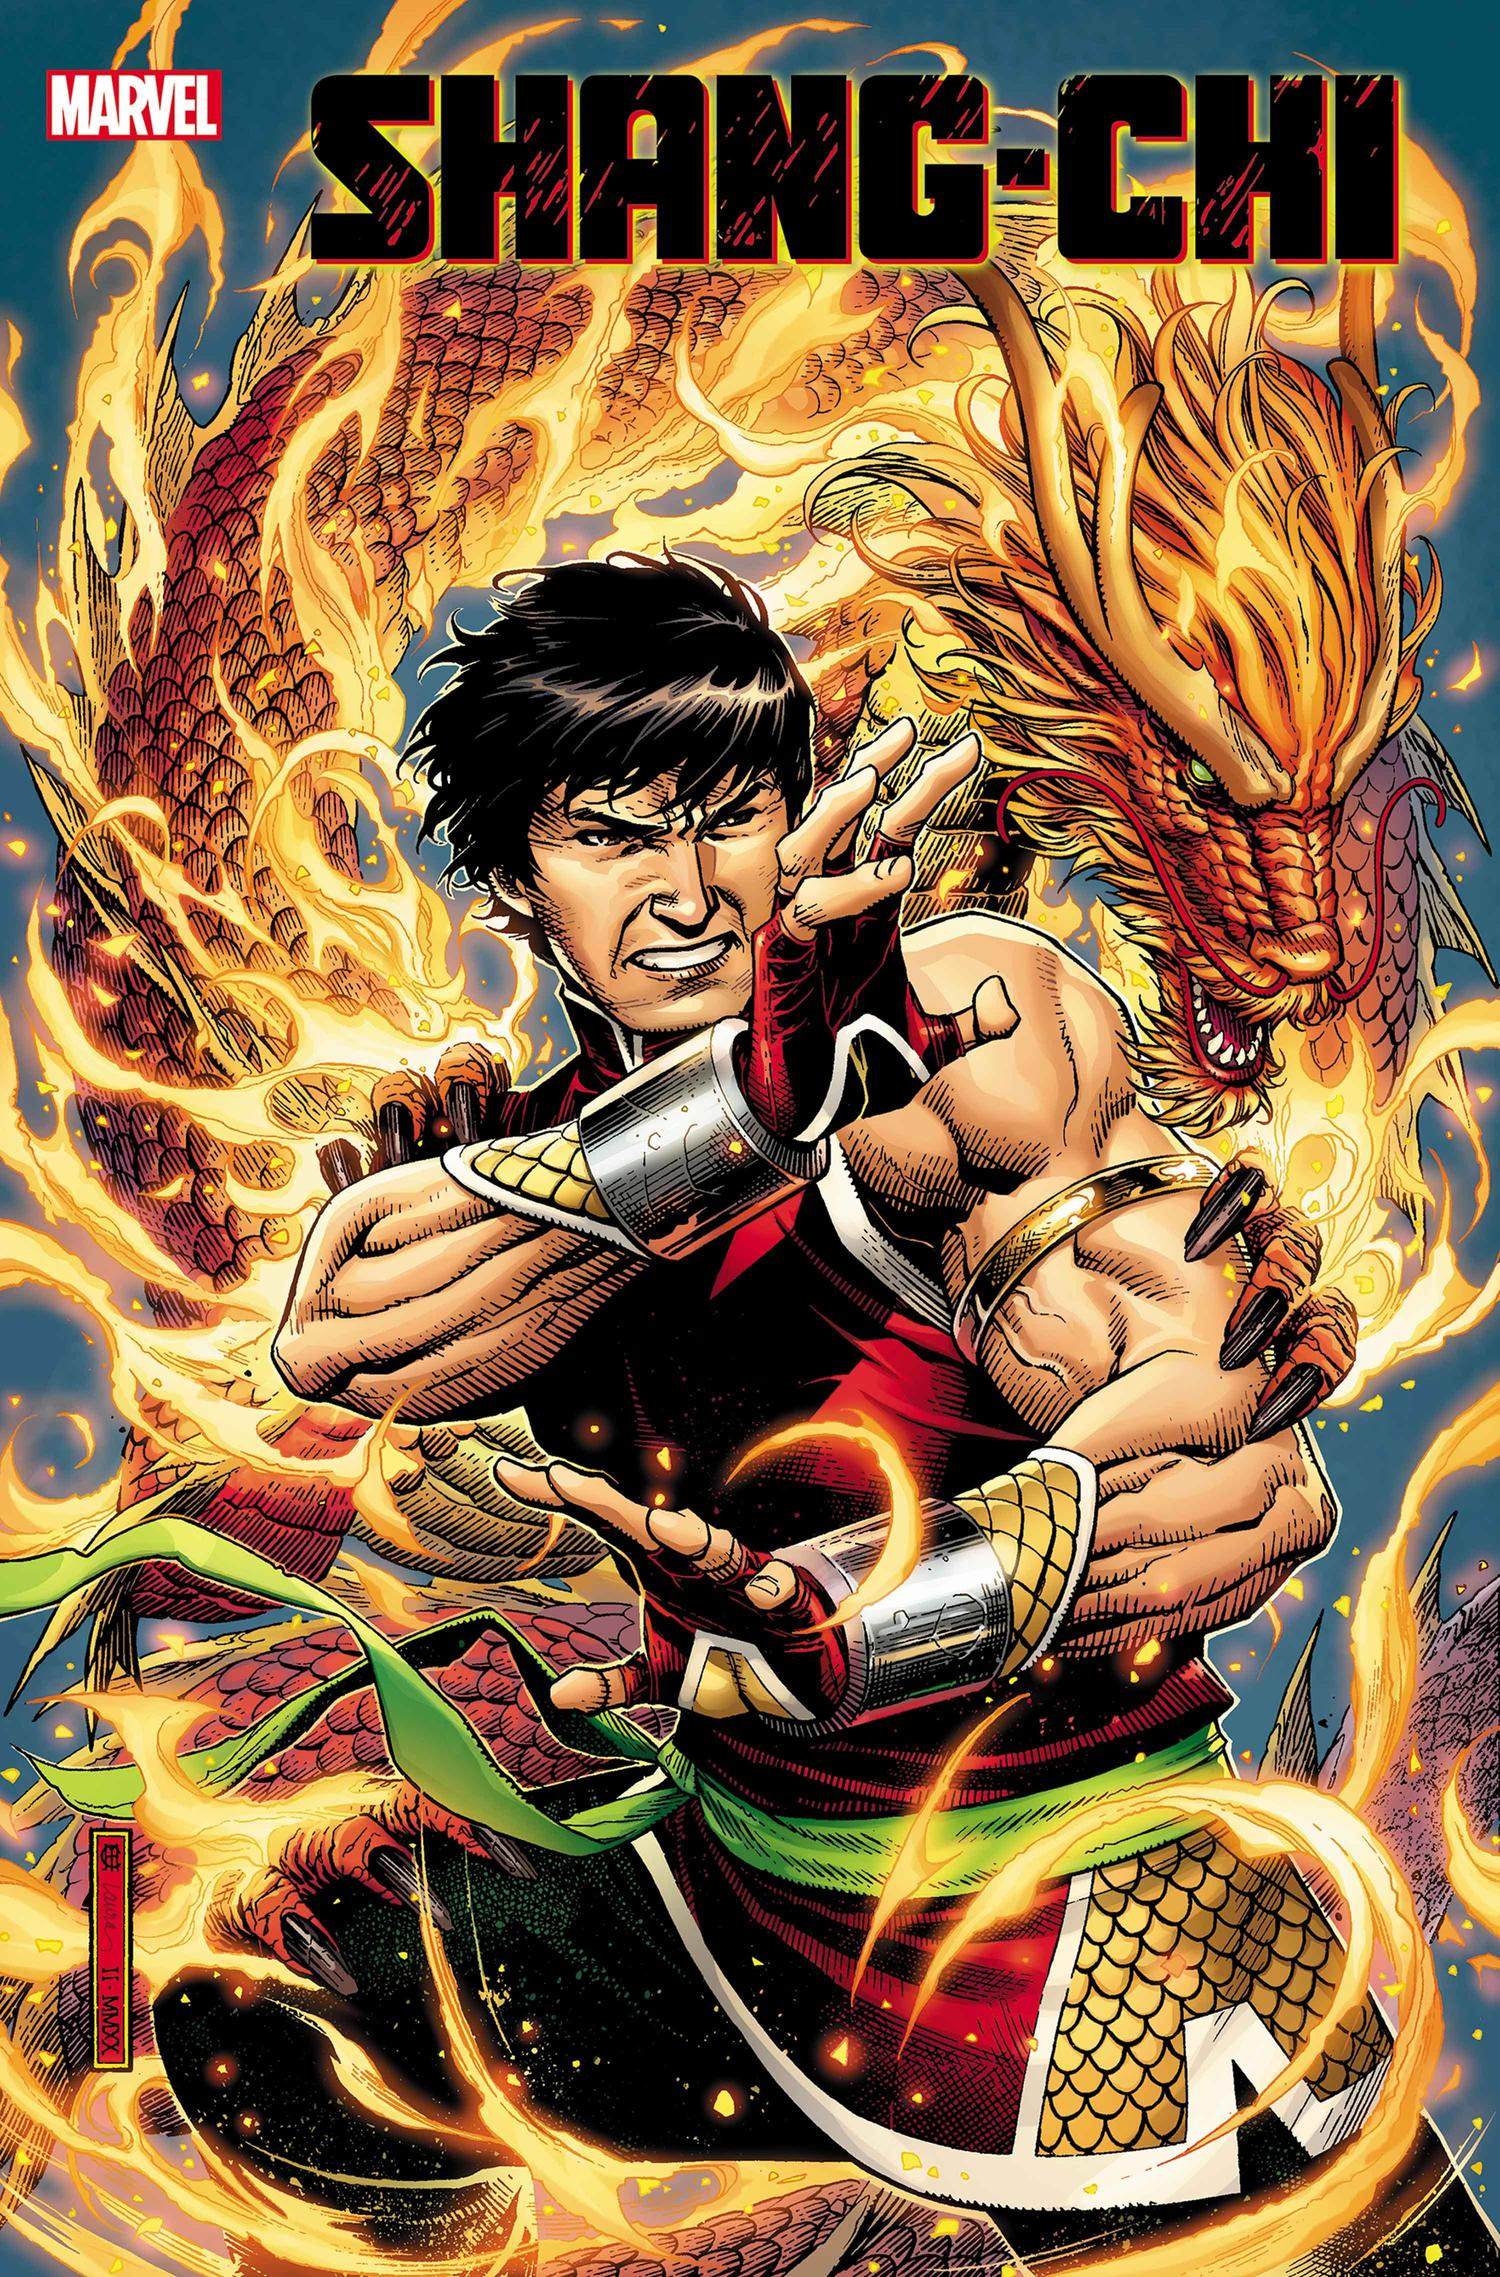 SHANG-CHI #1 cover by Jim Cheung